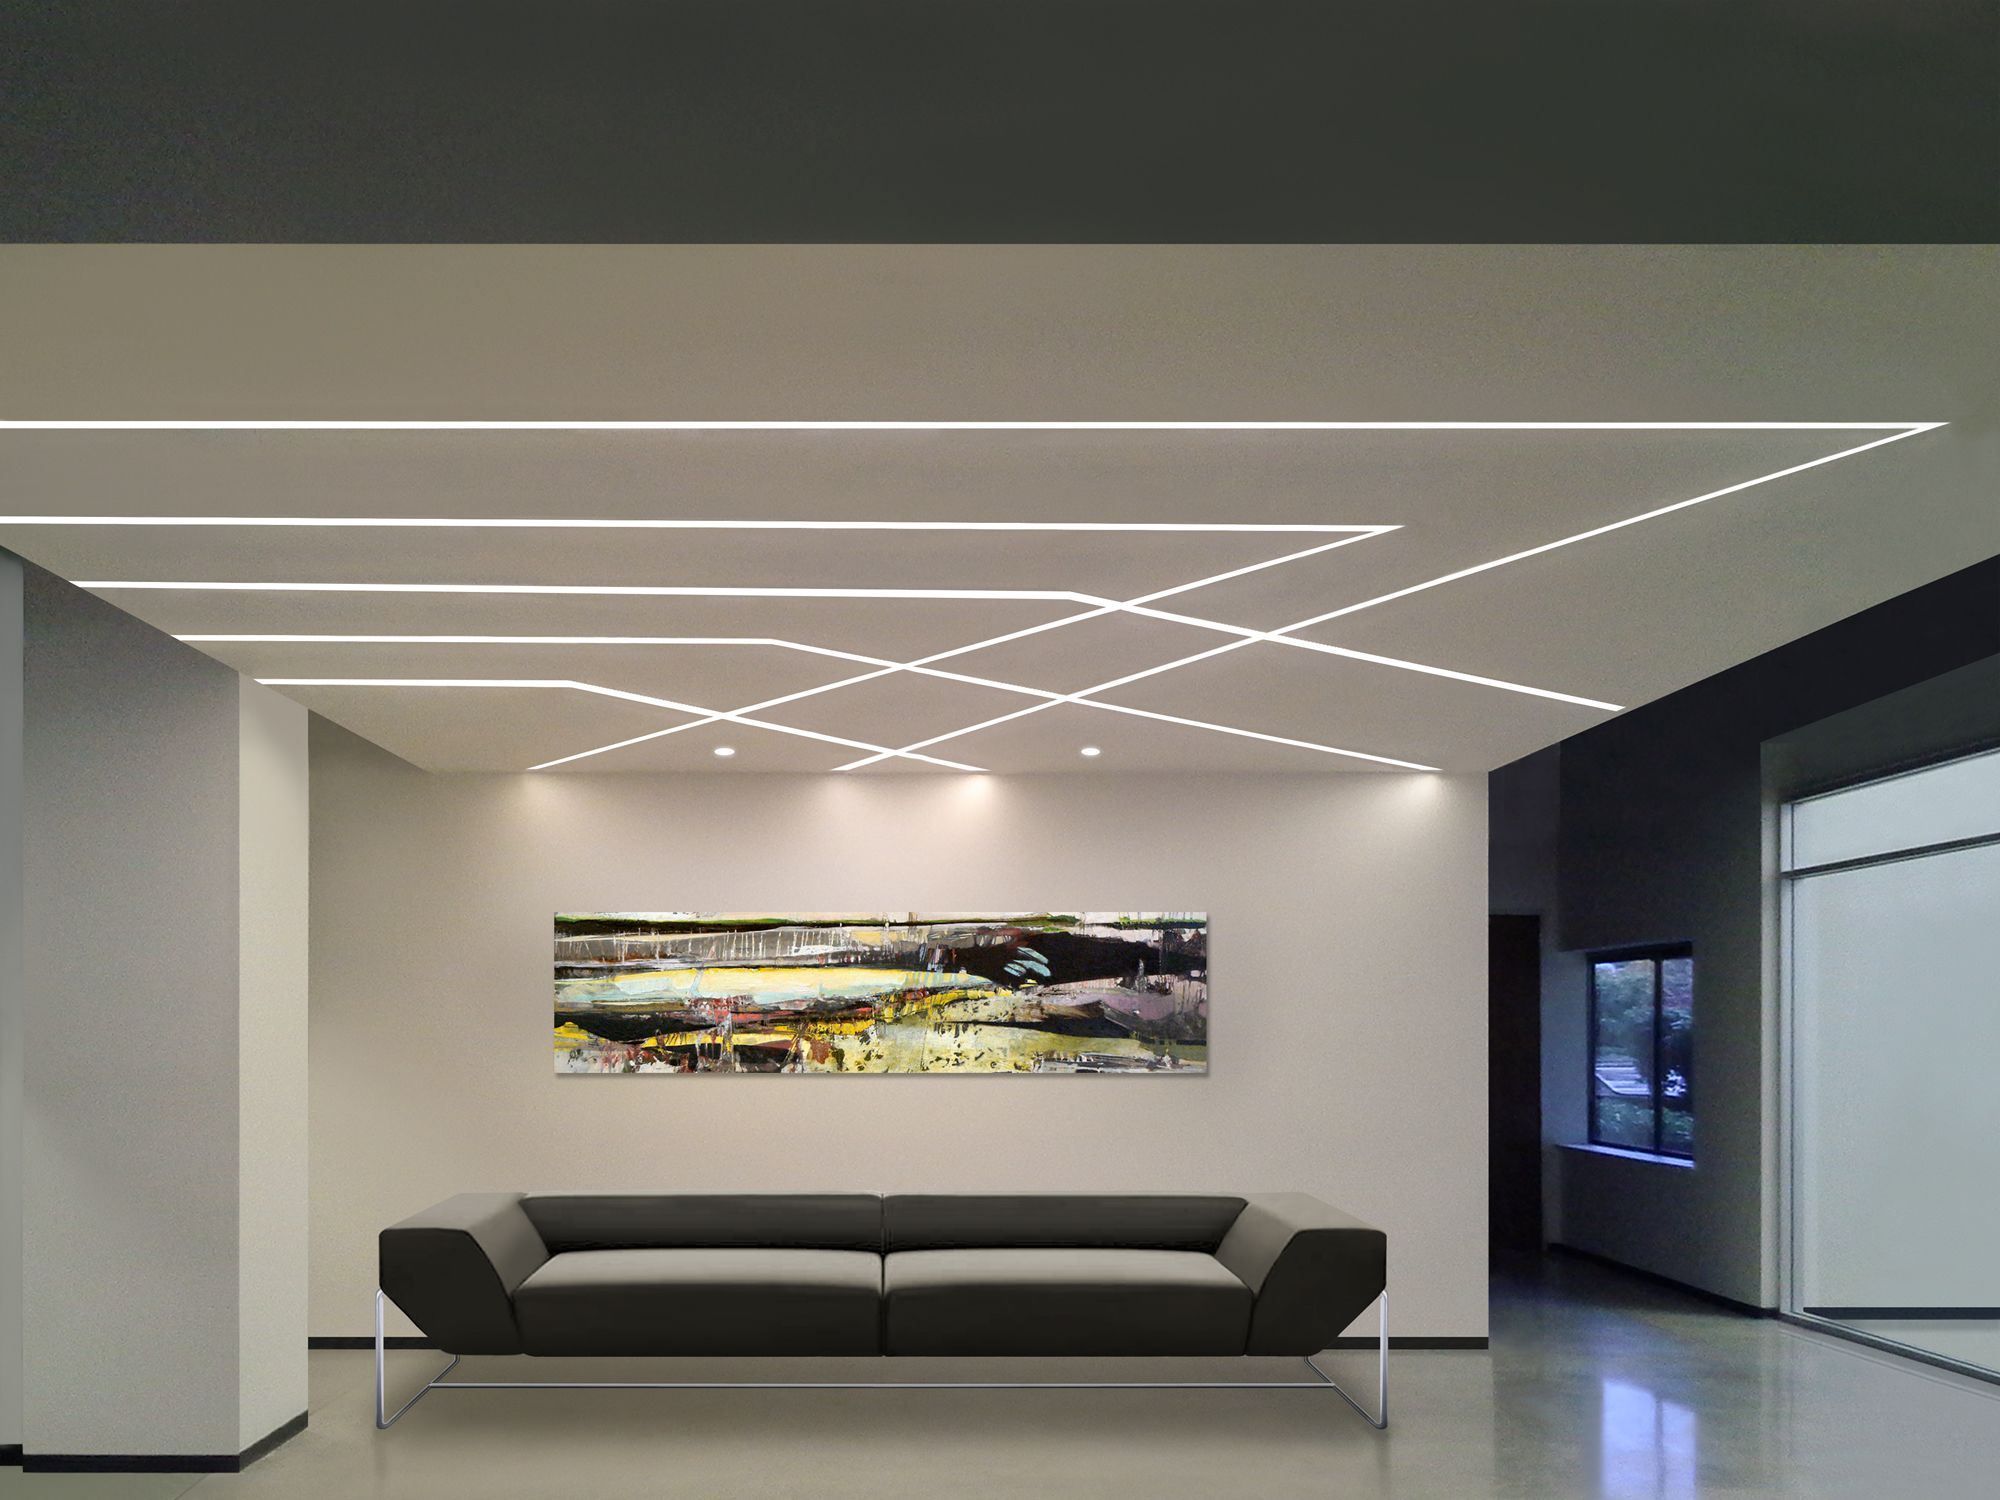 Agatha o truline 5 2 5w 24vdc plaster in led system pure lighting at lightology